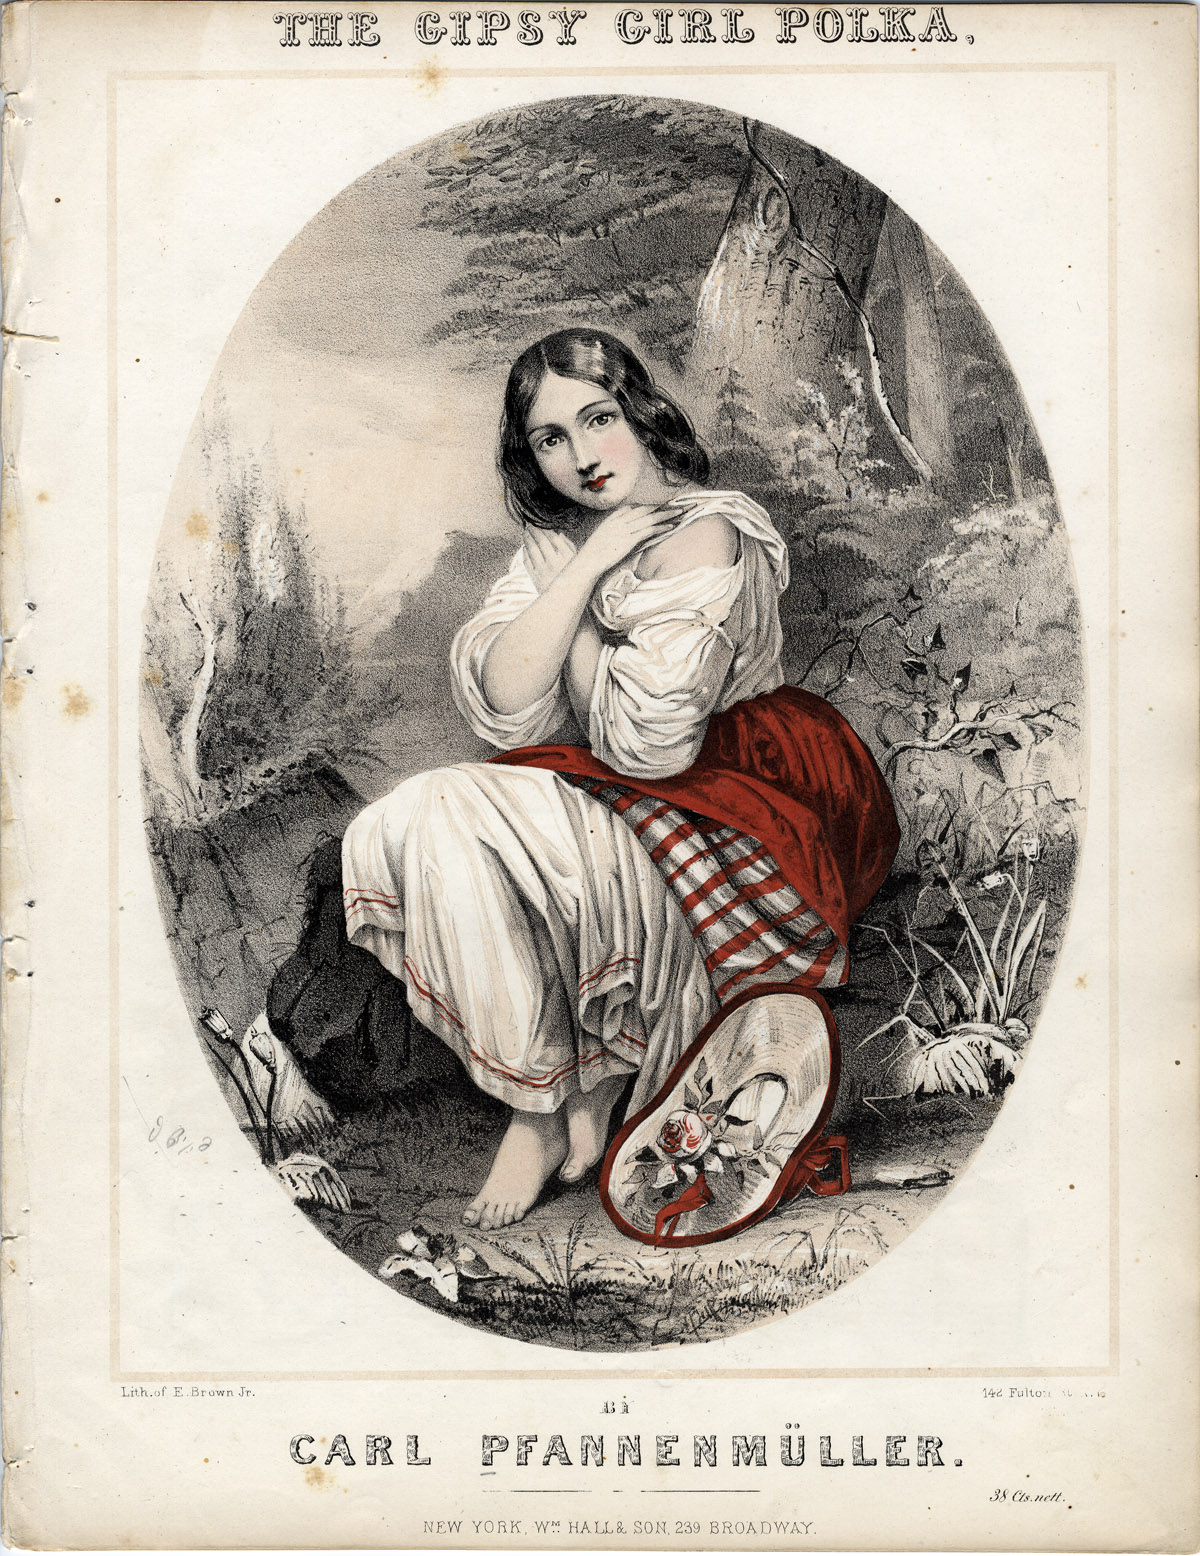 http://www.americanantiquarian.org/Exhibitions/Beauty/gypsy.jpg